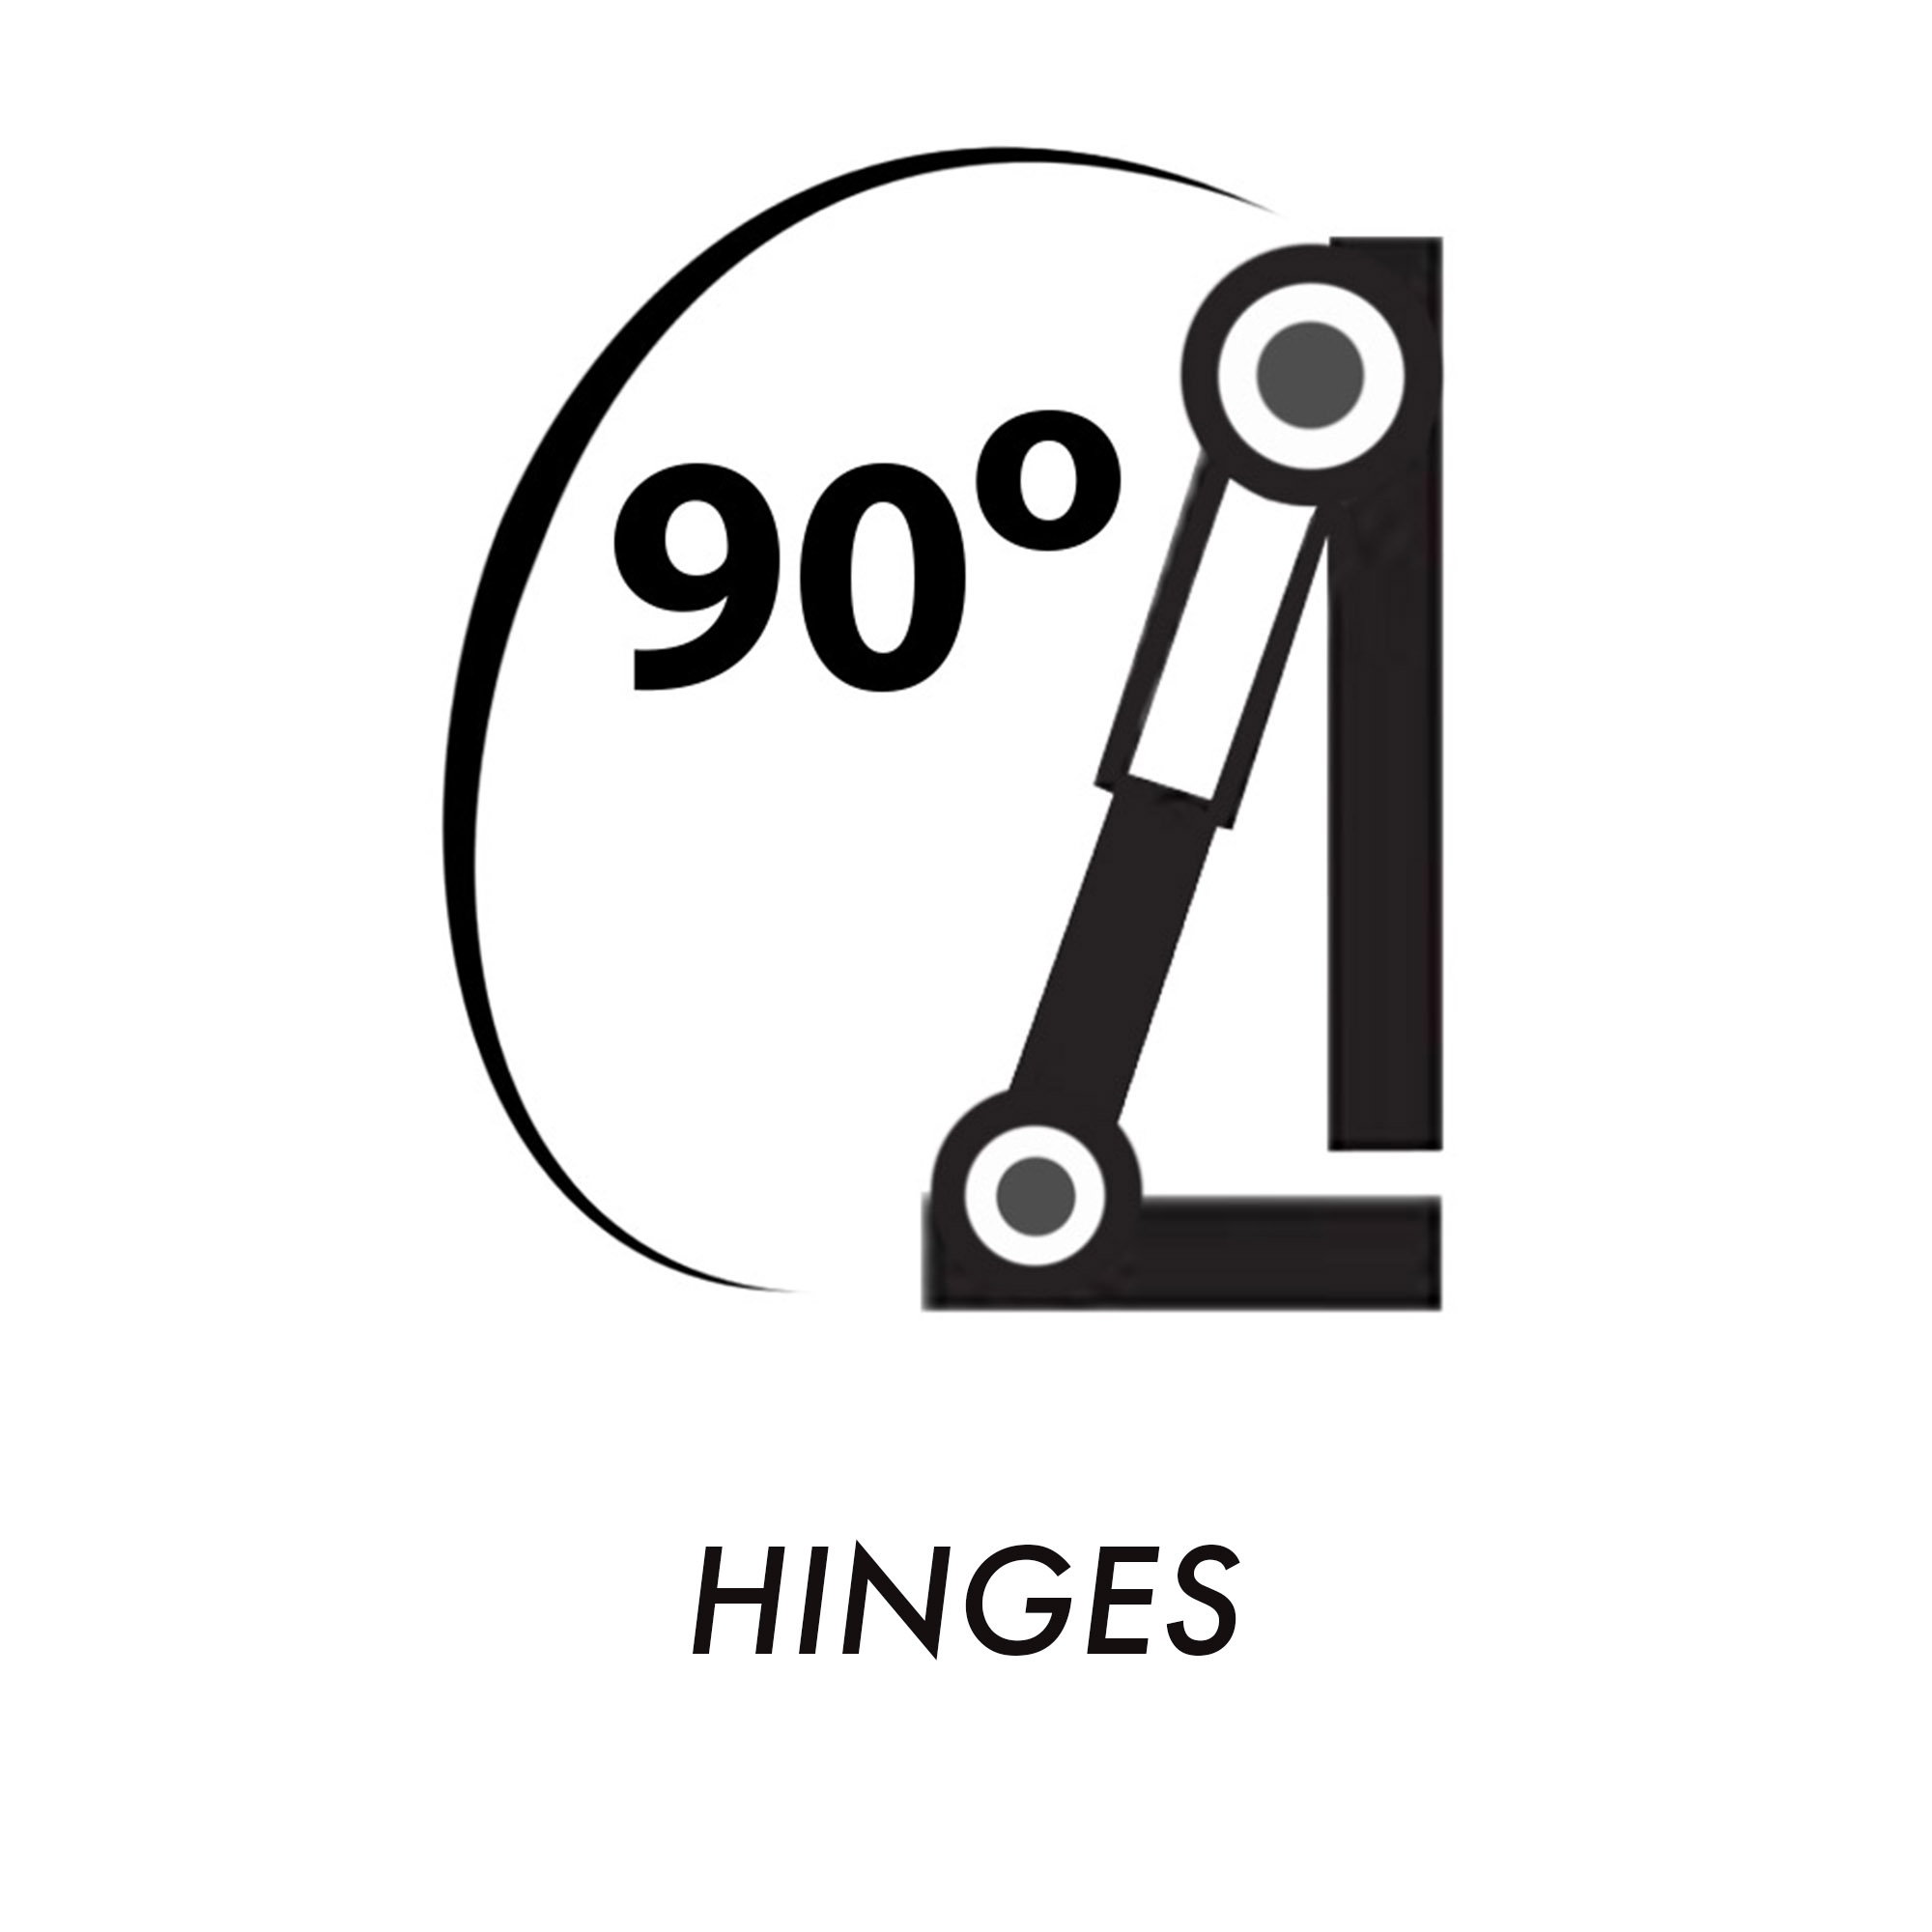 hinges-text.jpg